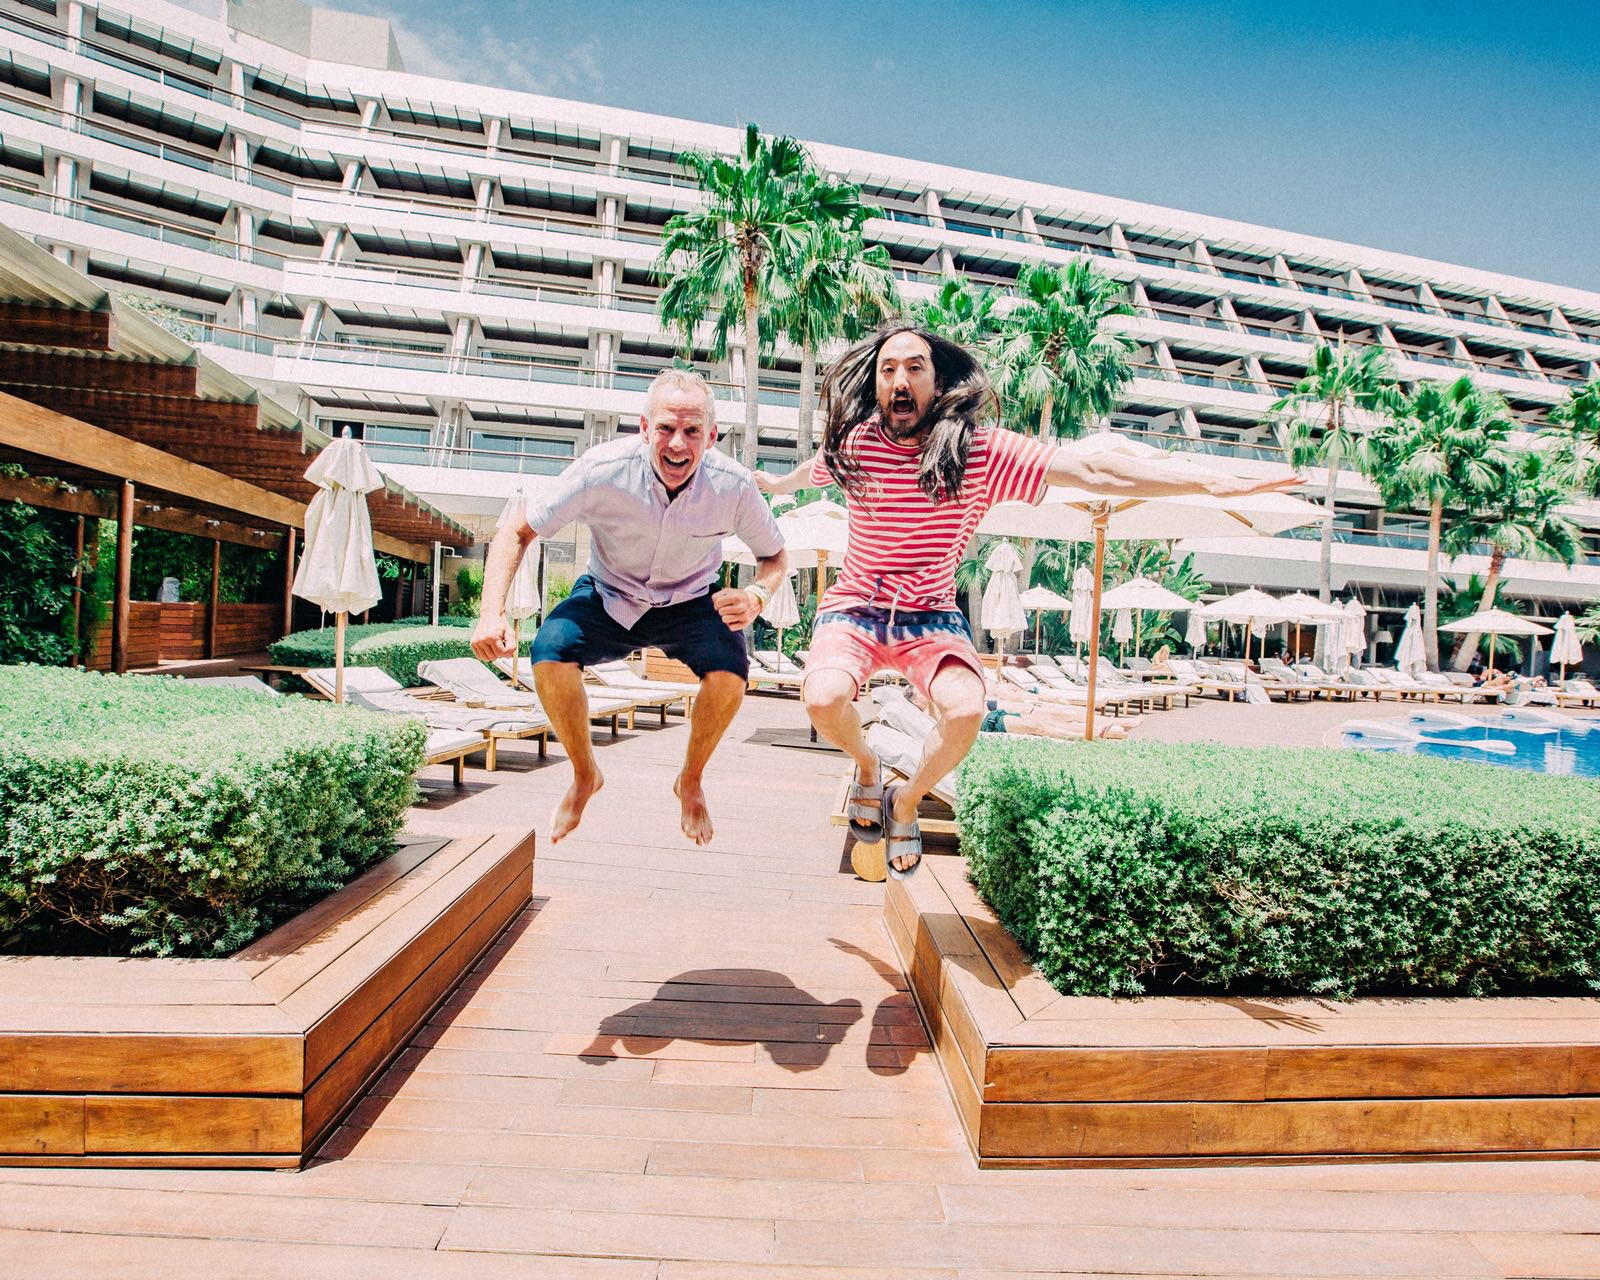 #aokijump #915. The Aoki x @FatBoySlim Jump. Ibiza Gran Ibiza Spain ���� july 3 2018 https://t.co/iktSWGEYzV